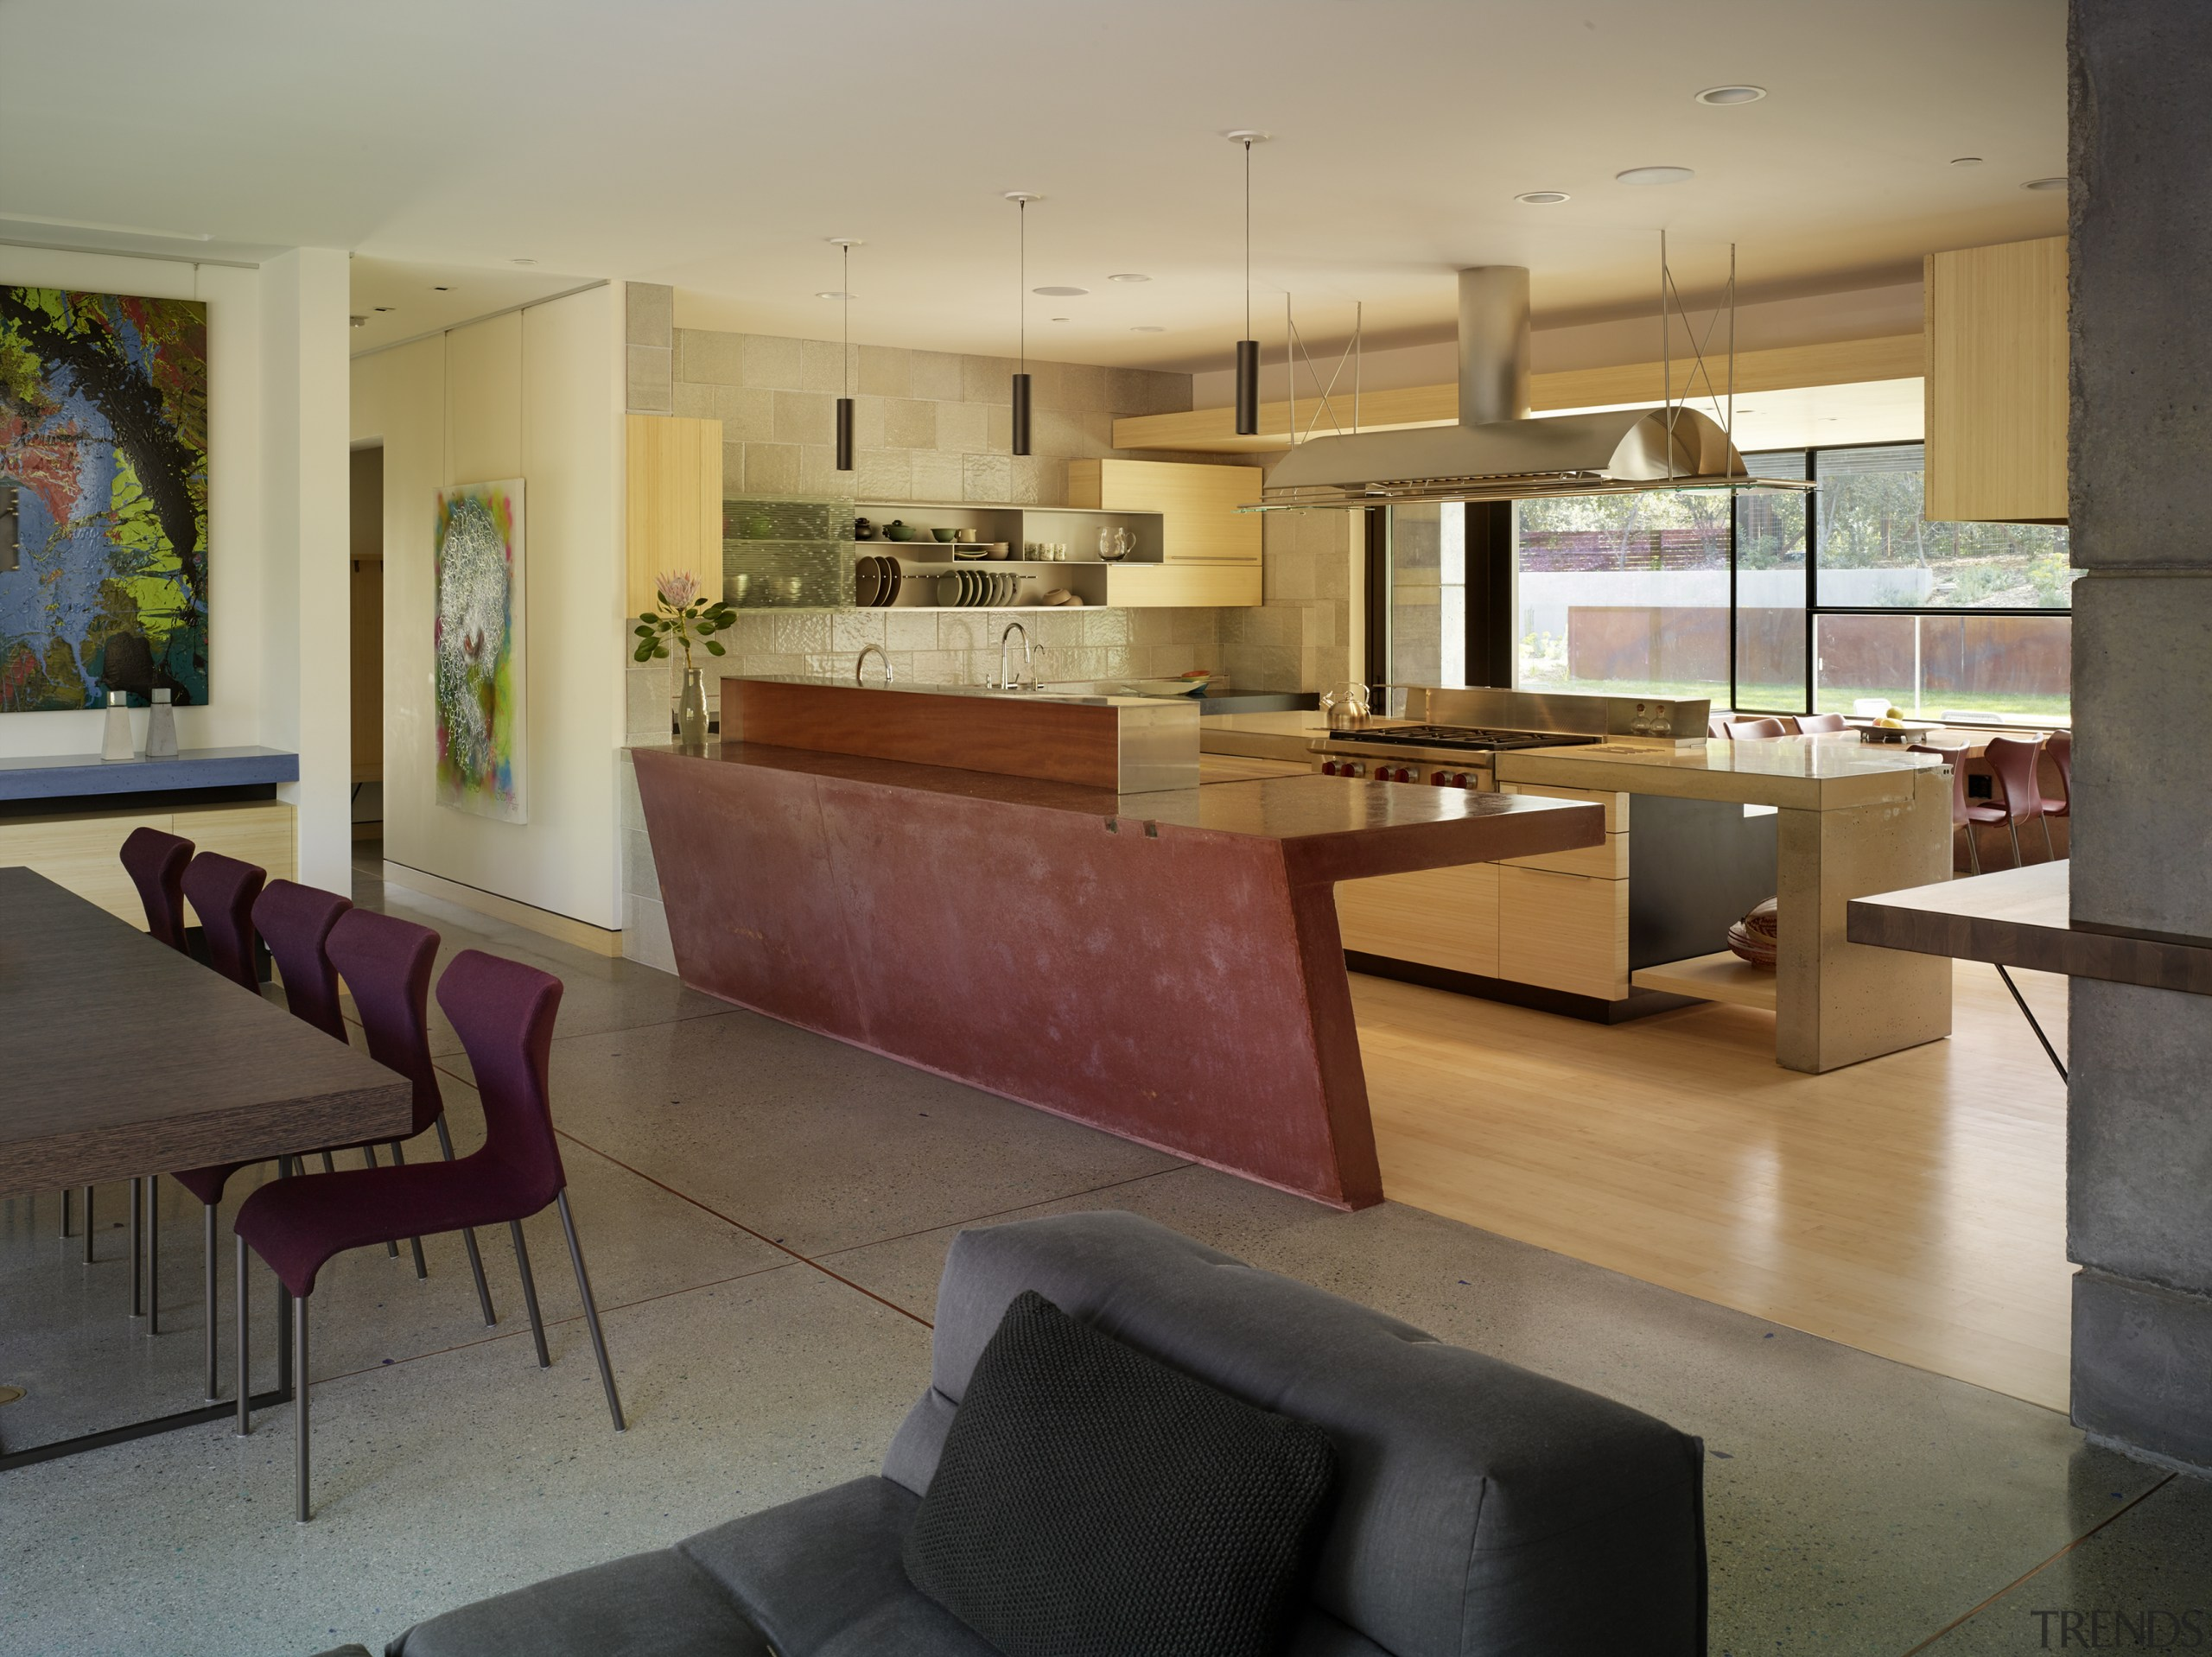 An angled, oxide red concrete island delineates this architecture, floor, tiles, concrete, furniture, house, interior design, living room, FuTung Cheng, Cheng Design